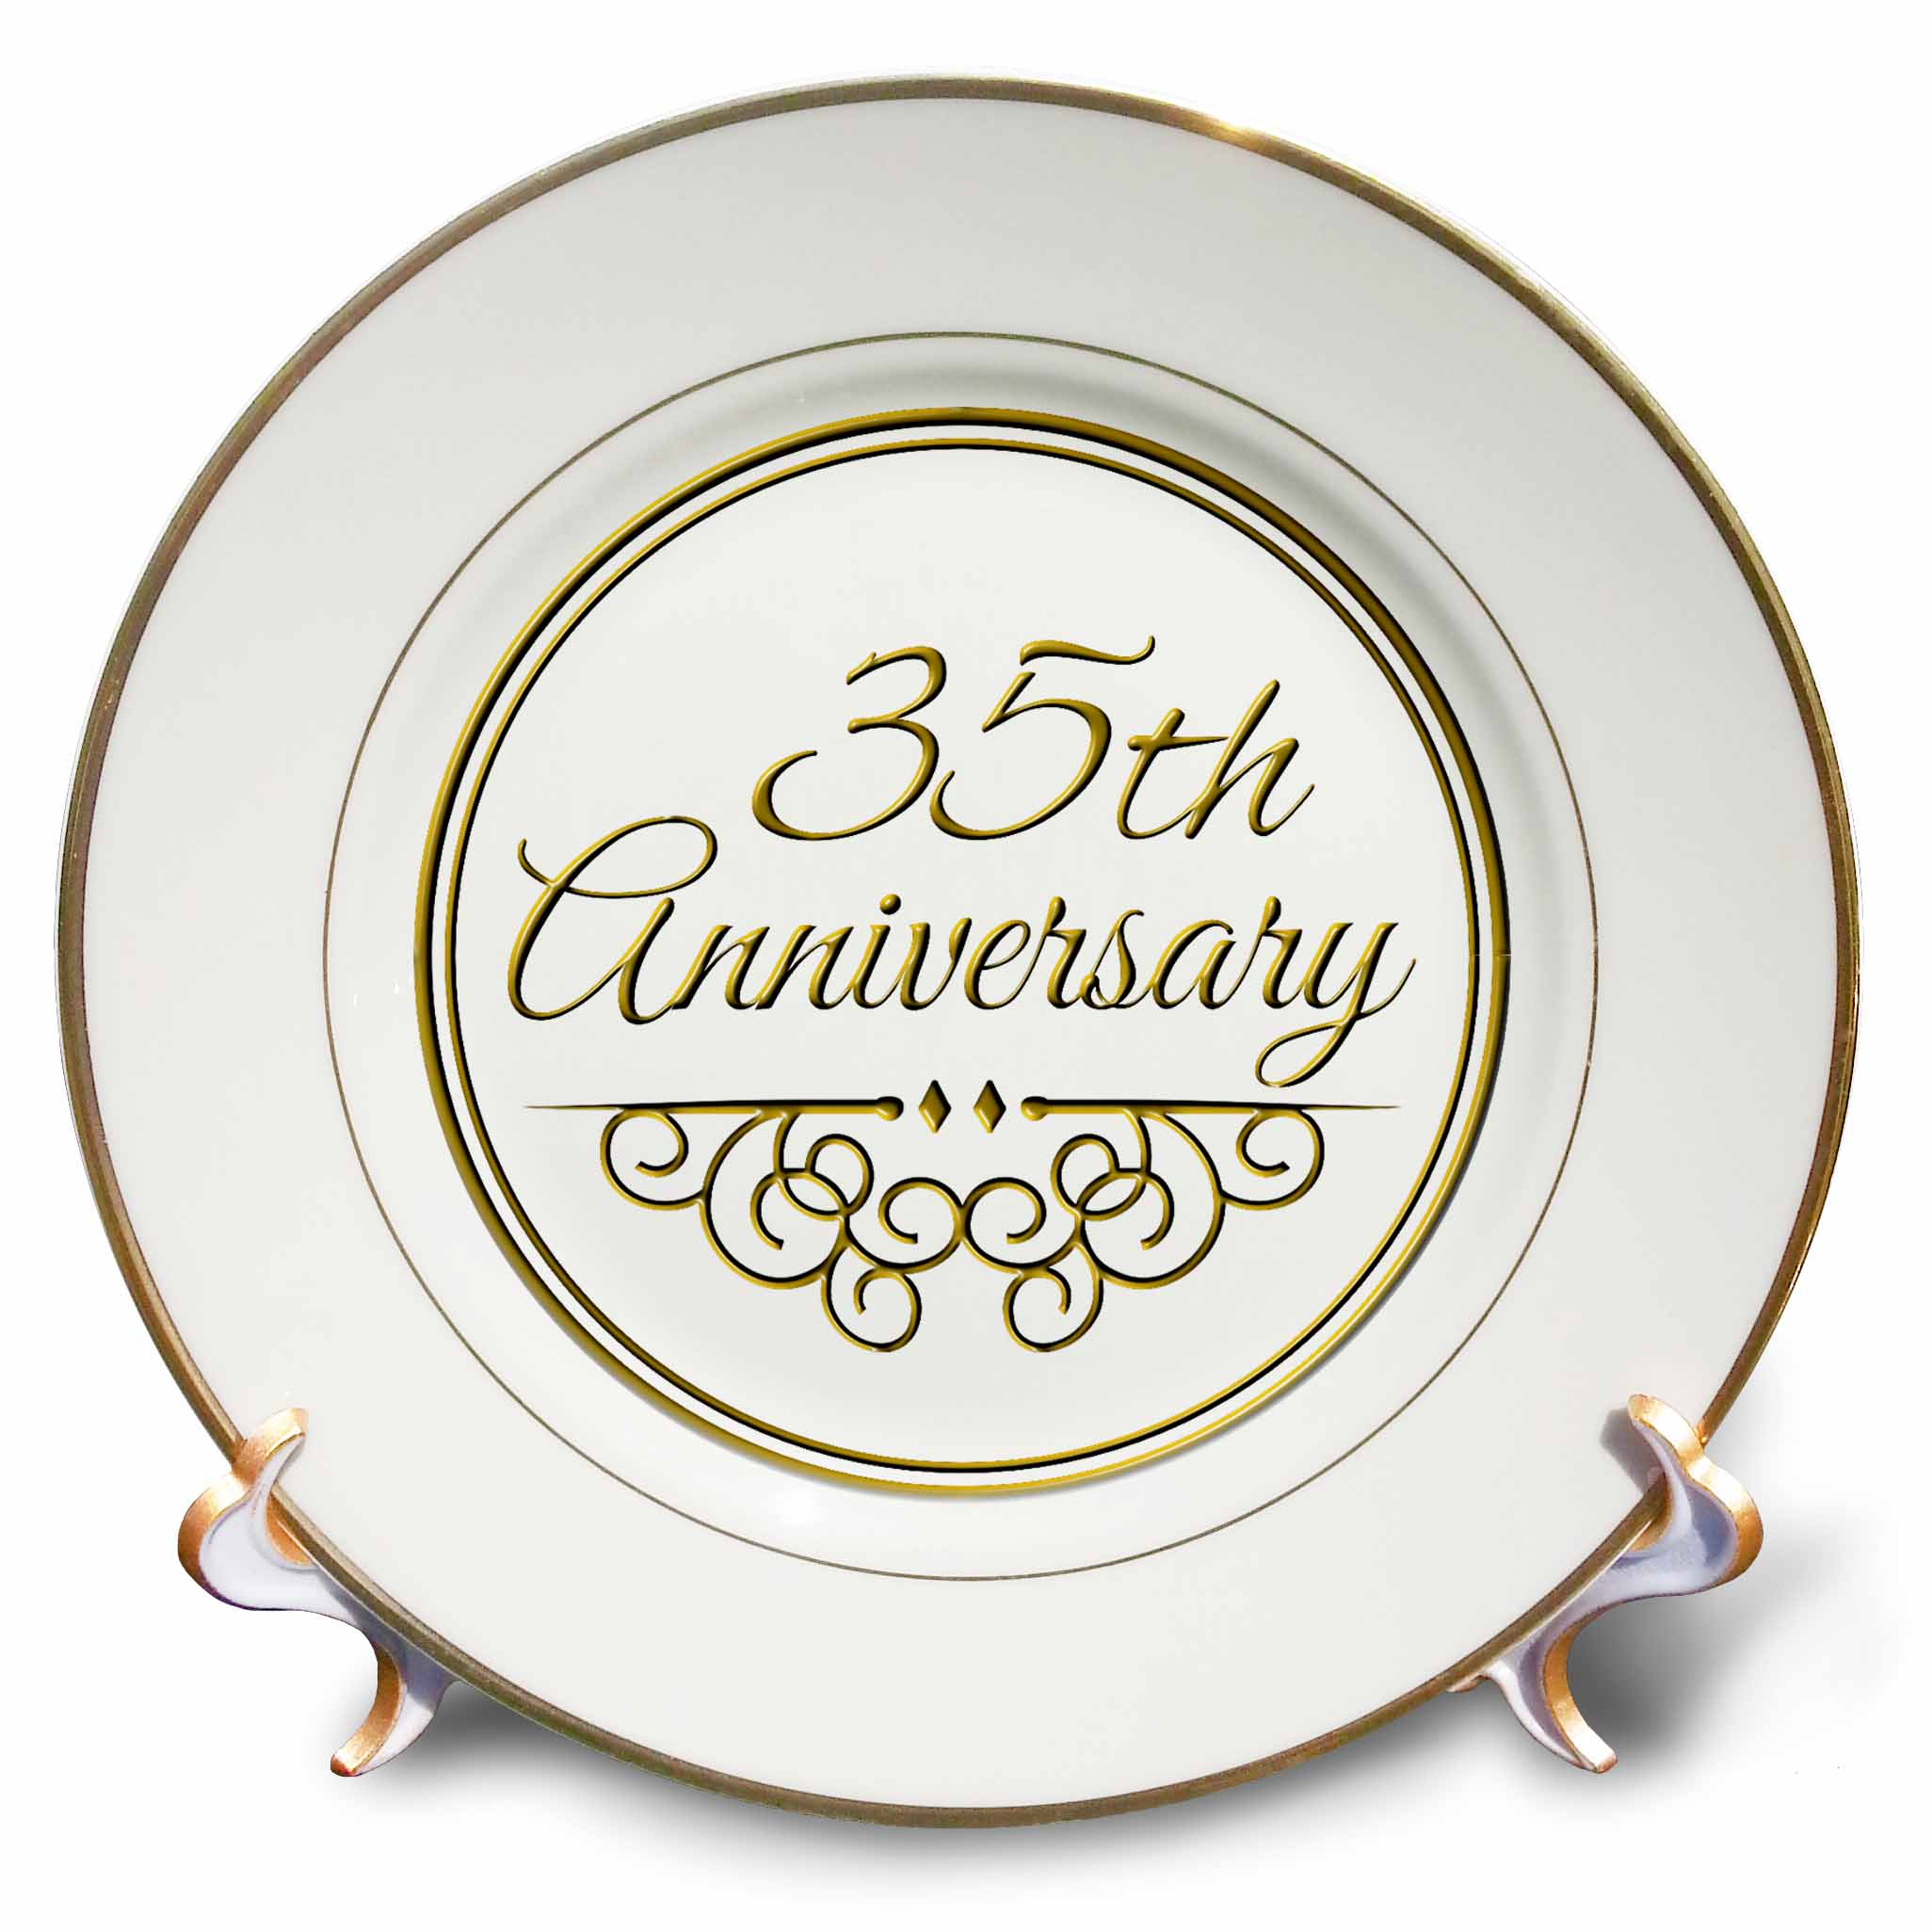 3dRose 35th Anniversary gift - gold text for celebrating wedding anniversaries - 35 years married together, Porcelain Plate, 8-inch